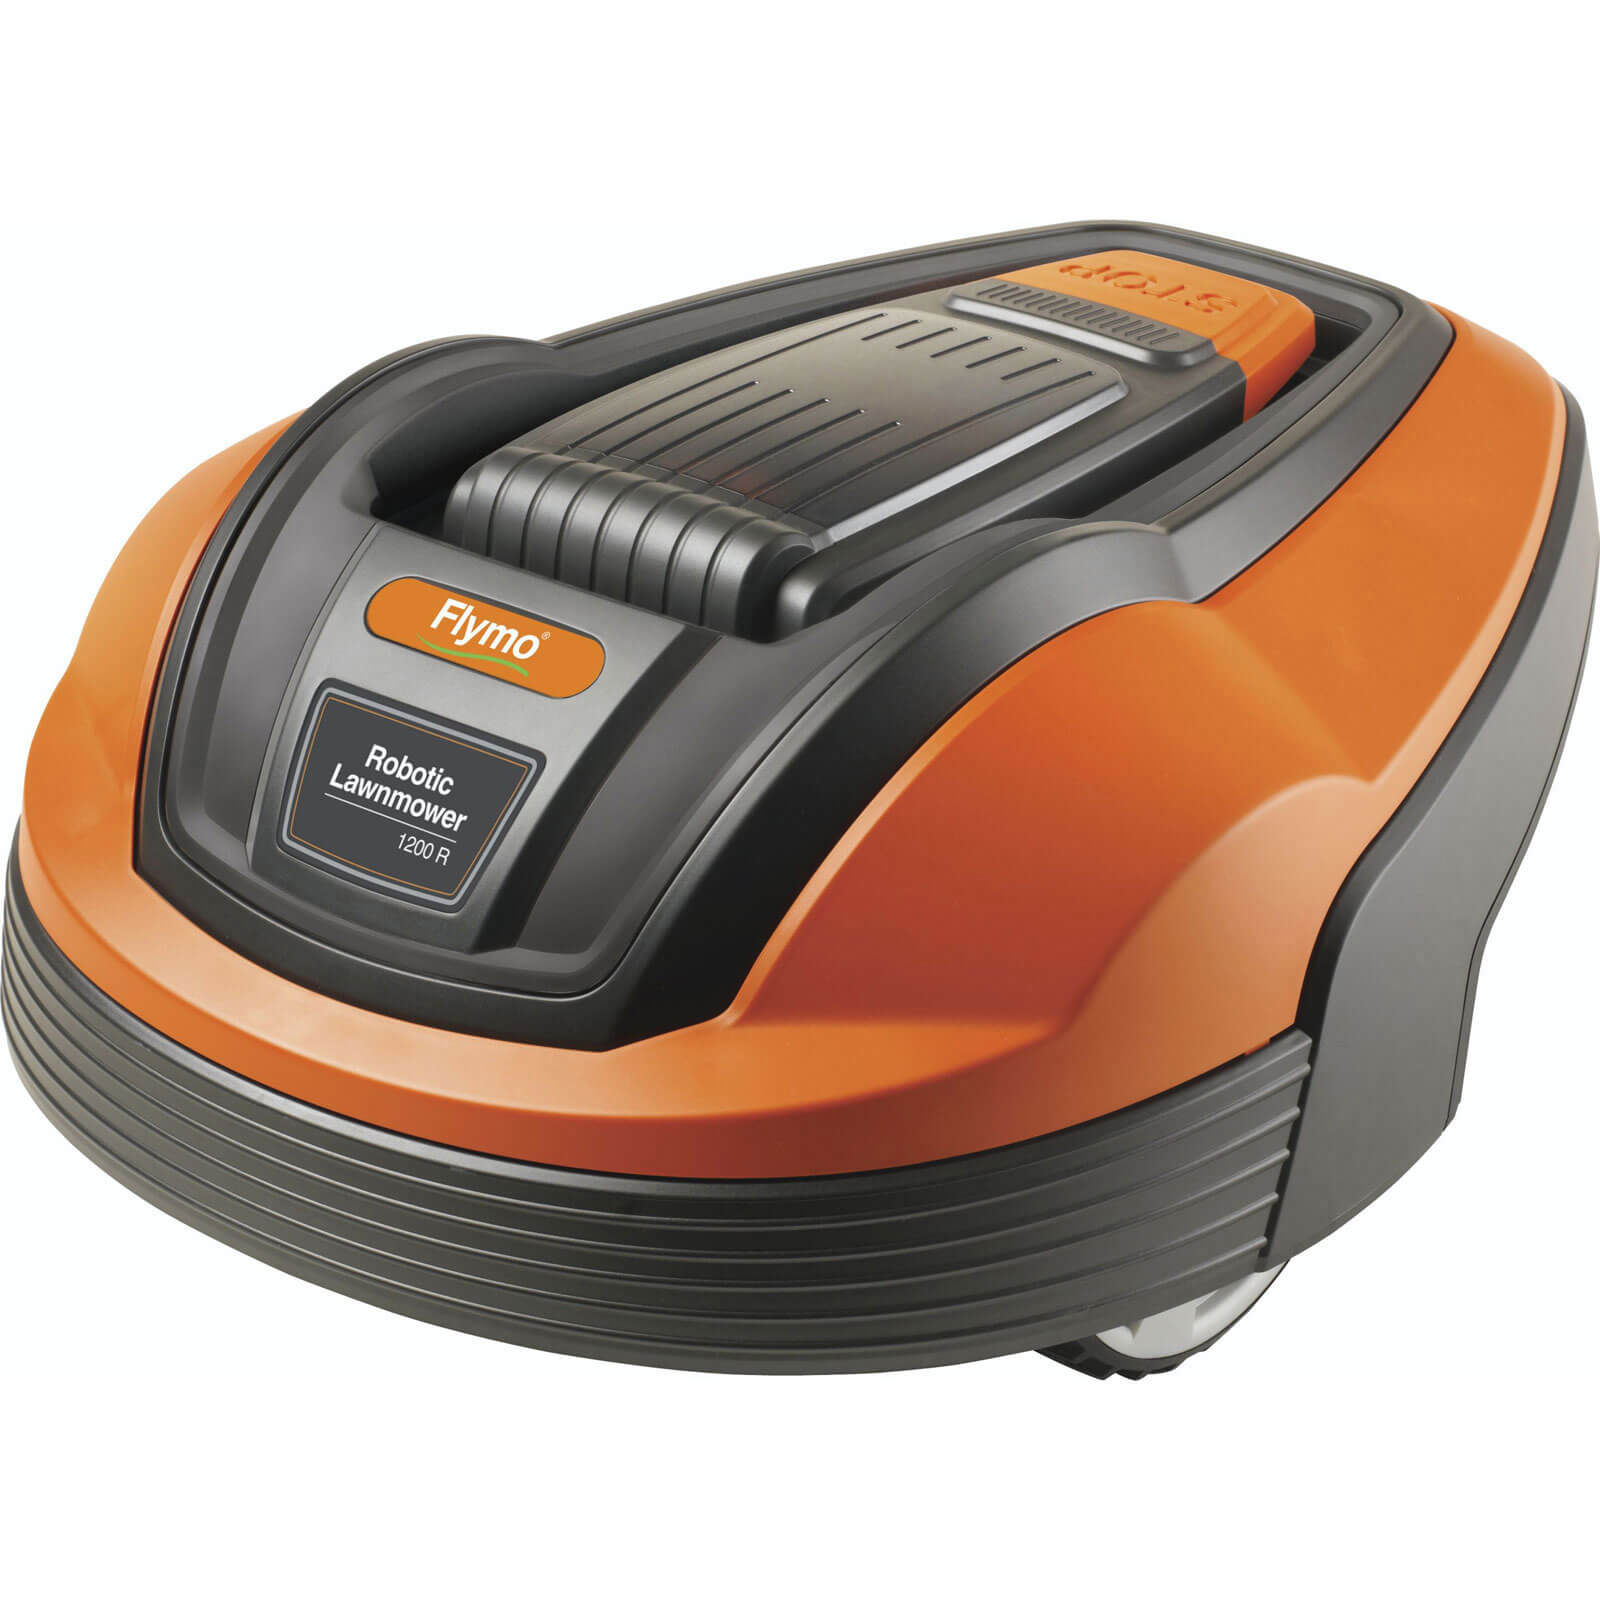 Image of Flymo RL1200R 18v Cordless Robotic Lawnmower 1 x 1.6ah NIMH Integrated Charger